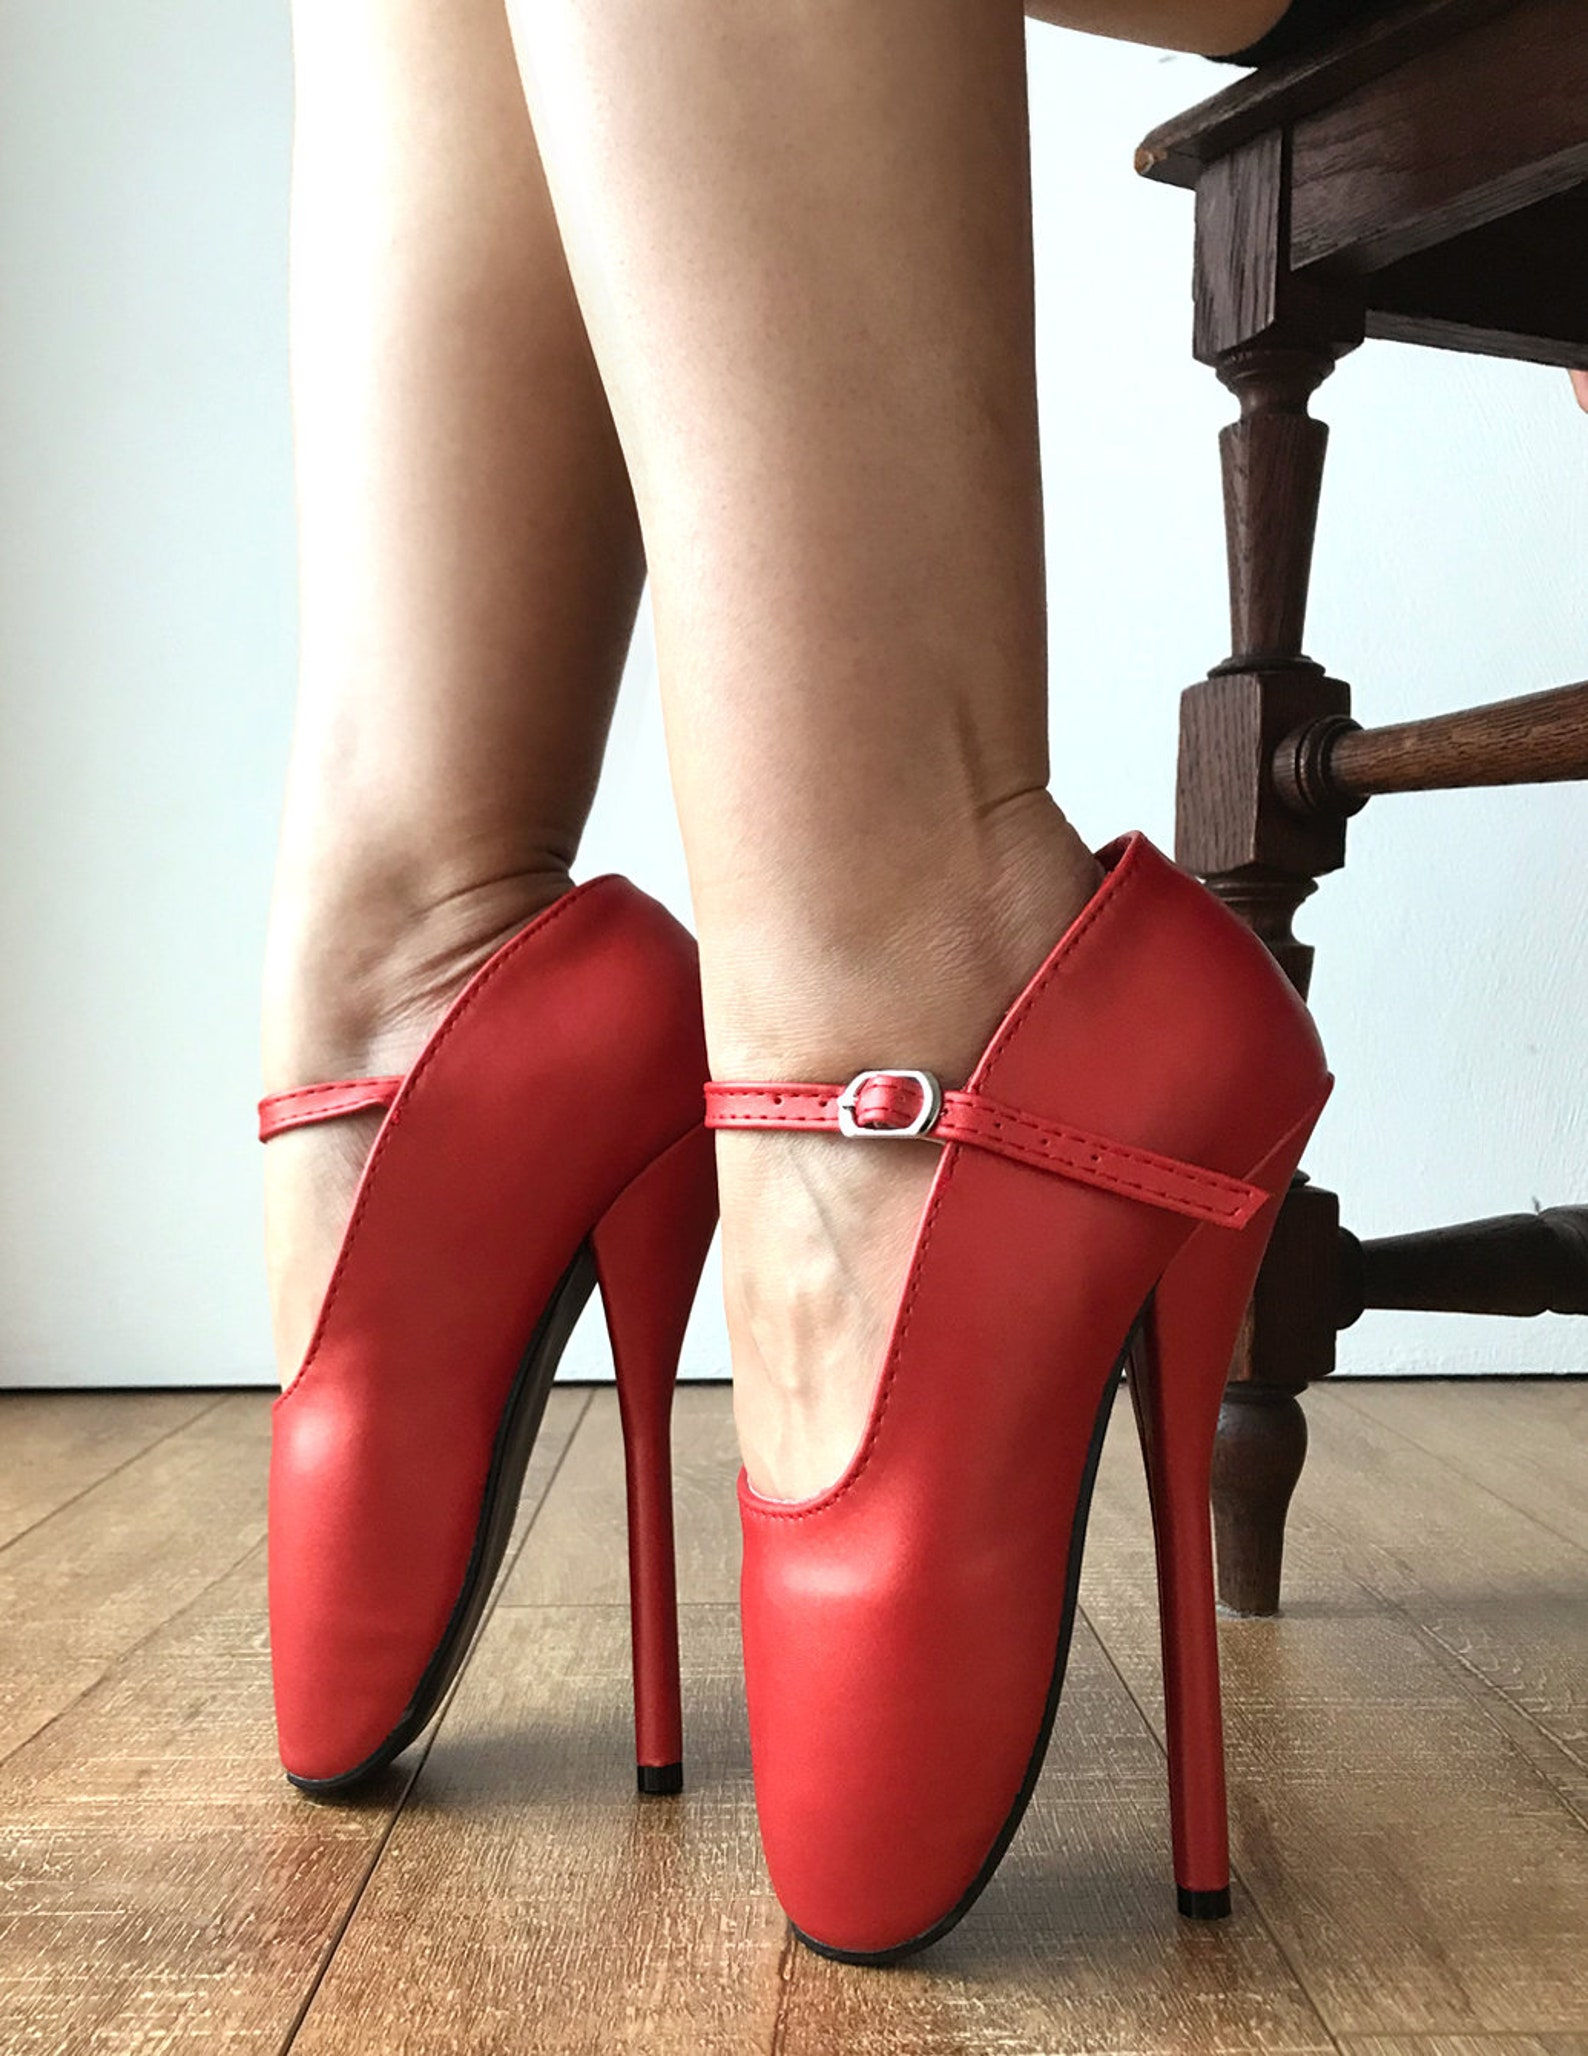 rtbu mariah burlesque strap mary janes fetish ballet pump stiletto pearl red